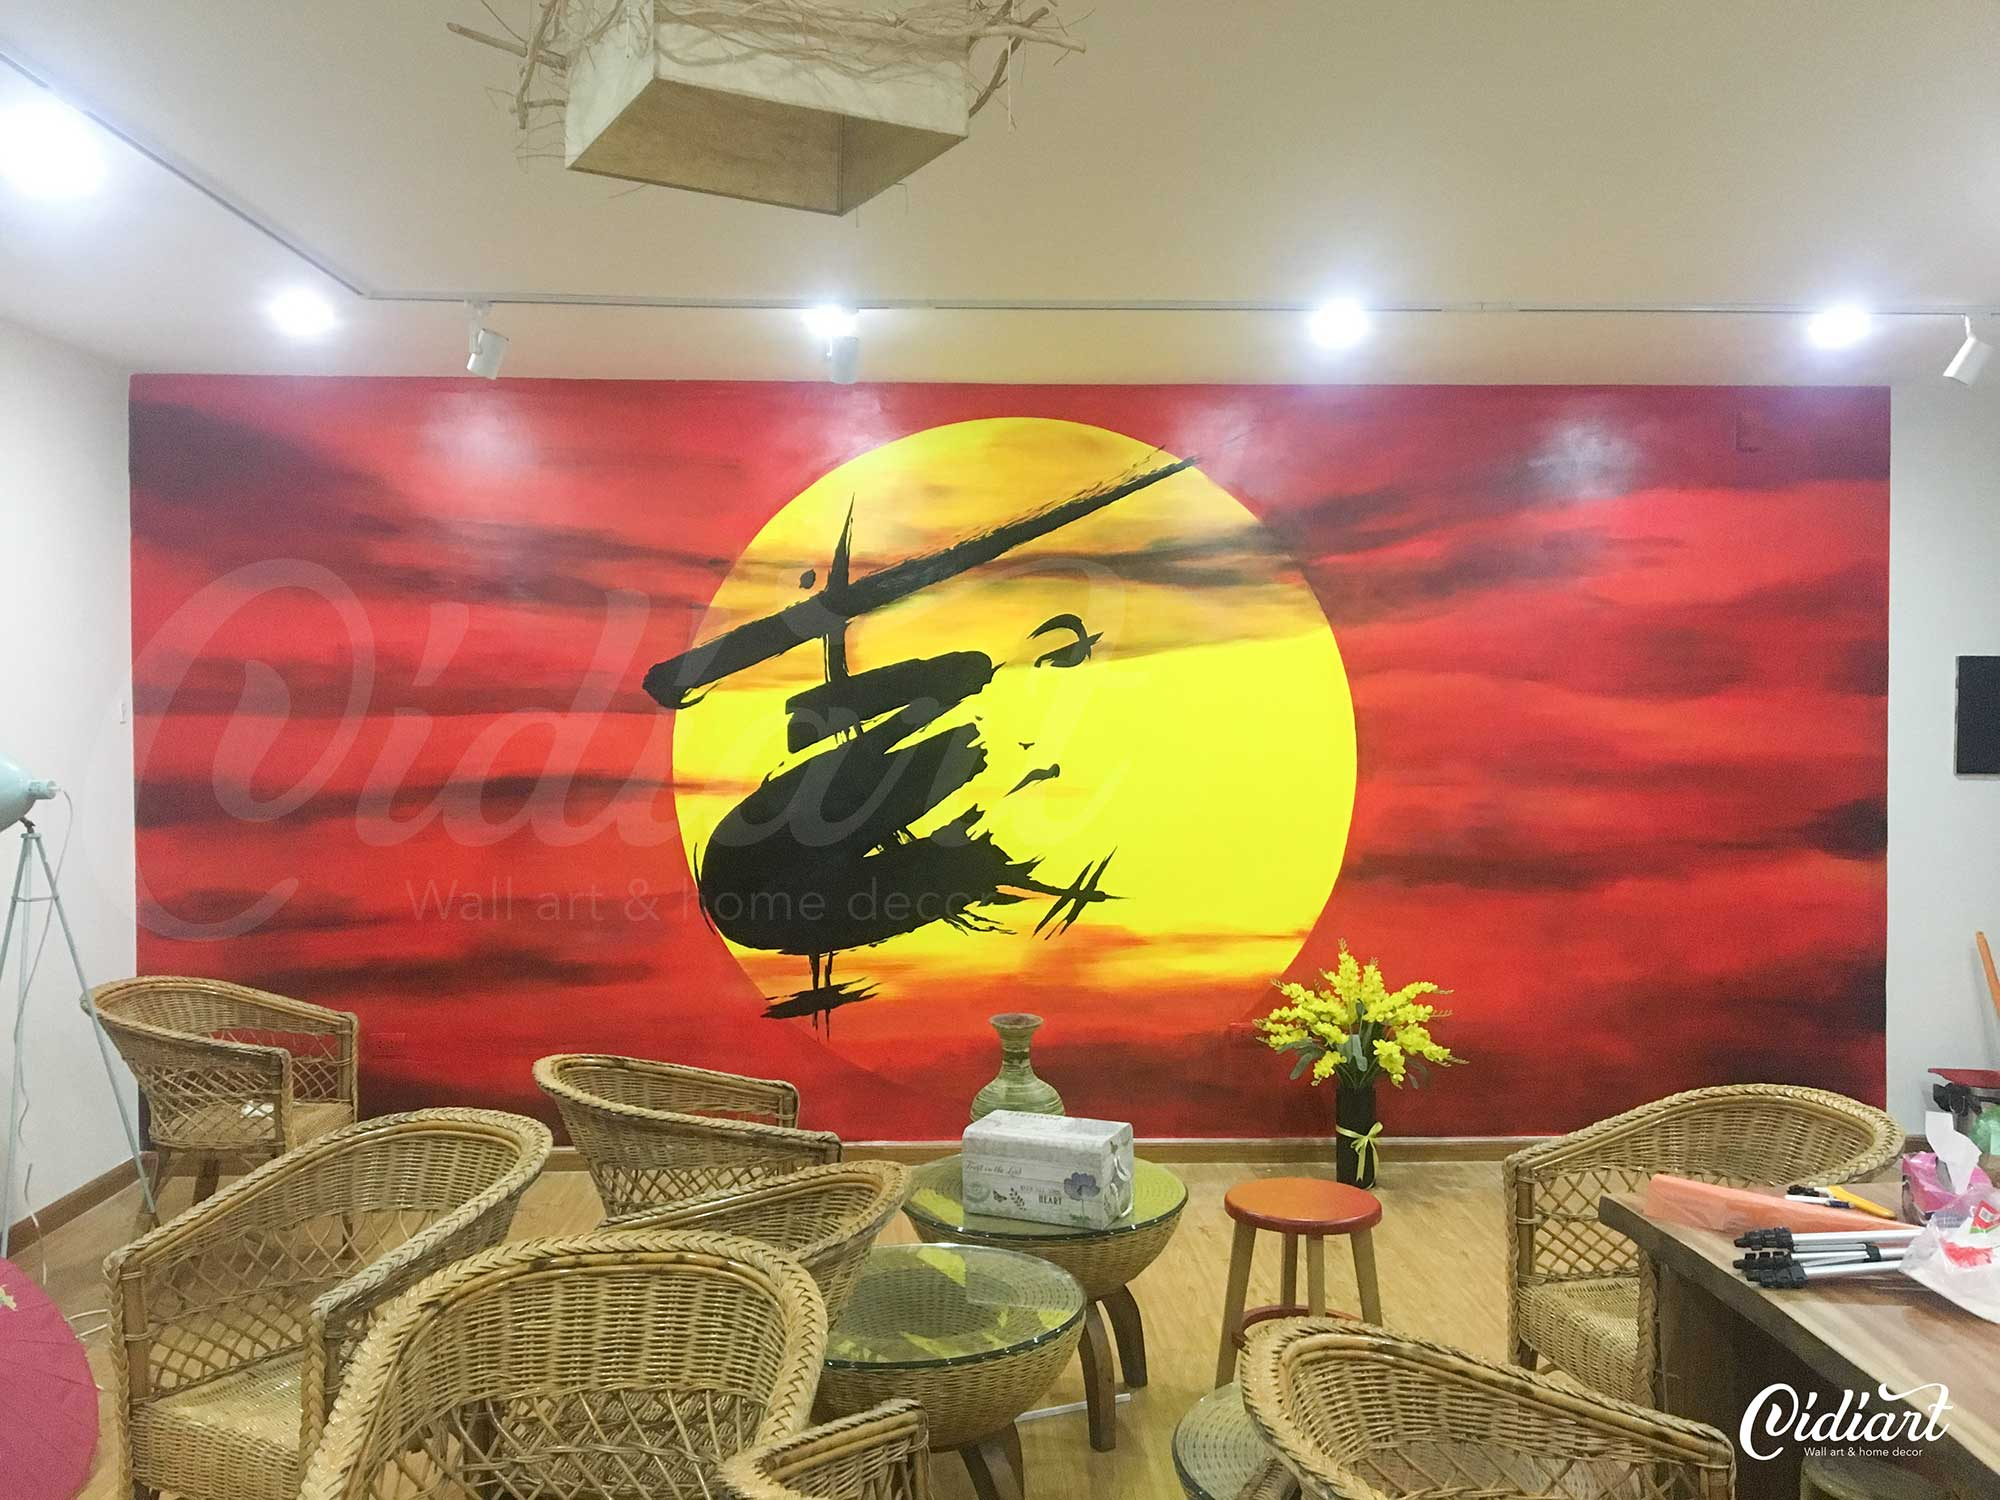 Miss Saigon to return to West End in 2014 1